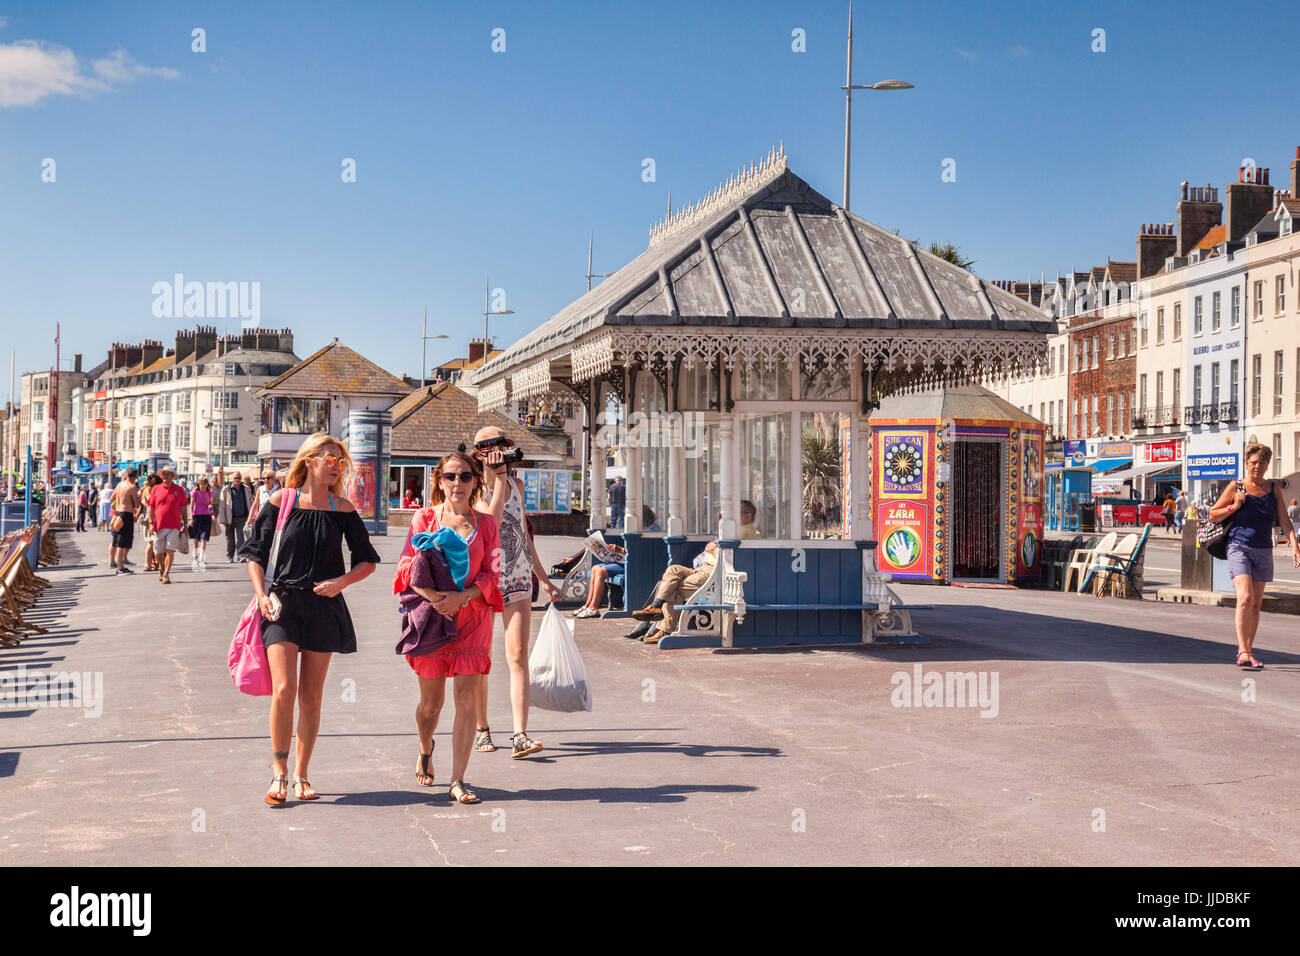 2 July 2017: Weymouth, Dorset, England, UK - Visitors on the Promenade on a hot summer day in July. - Stock Image